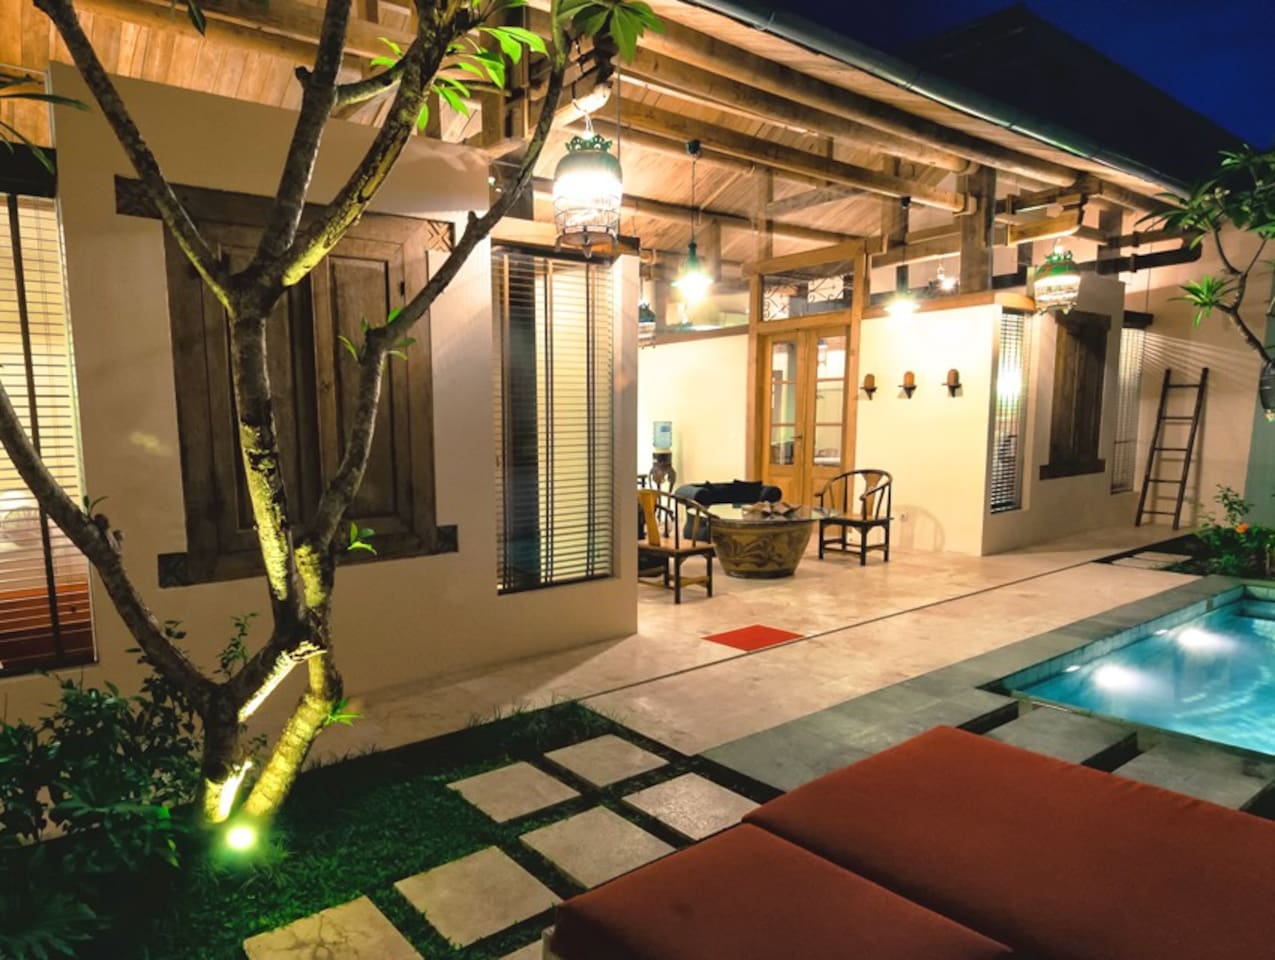 Shikumen Villa with private swimming pool, Bedroom 1 to the left, Bedroom 2 to the right. A 3rd bedroom is optional.